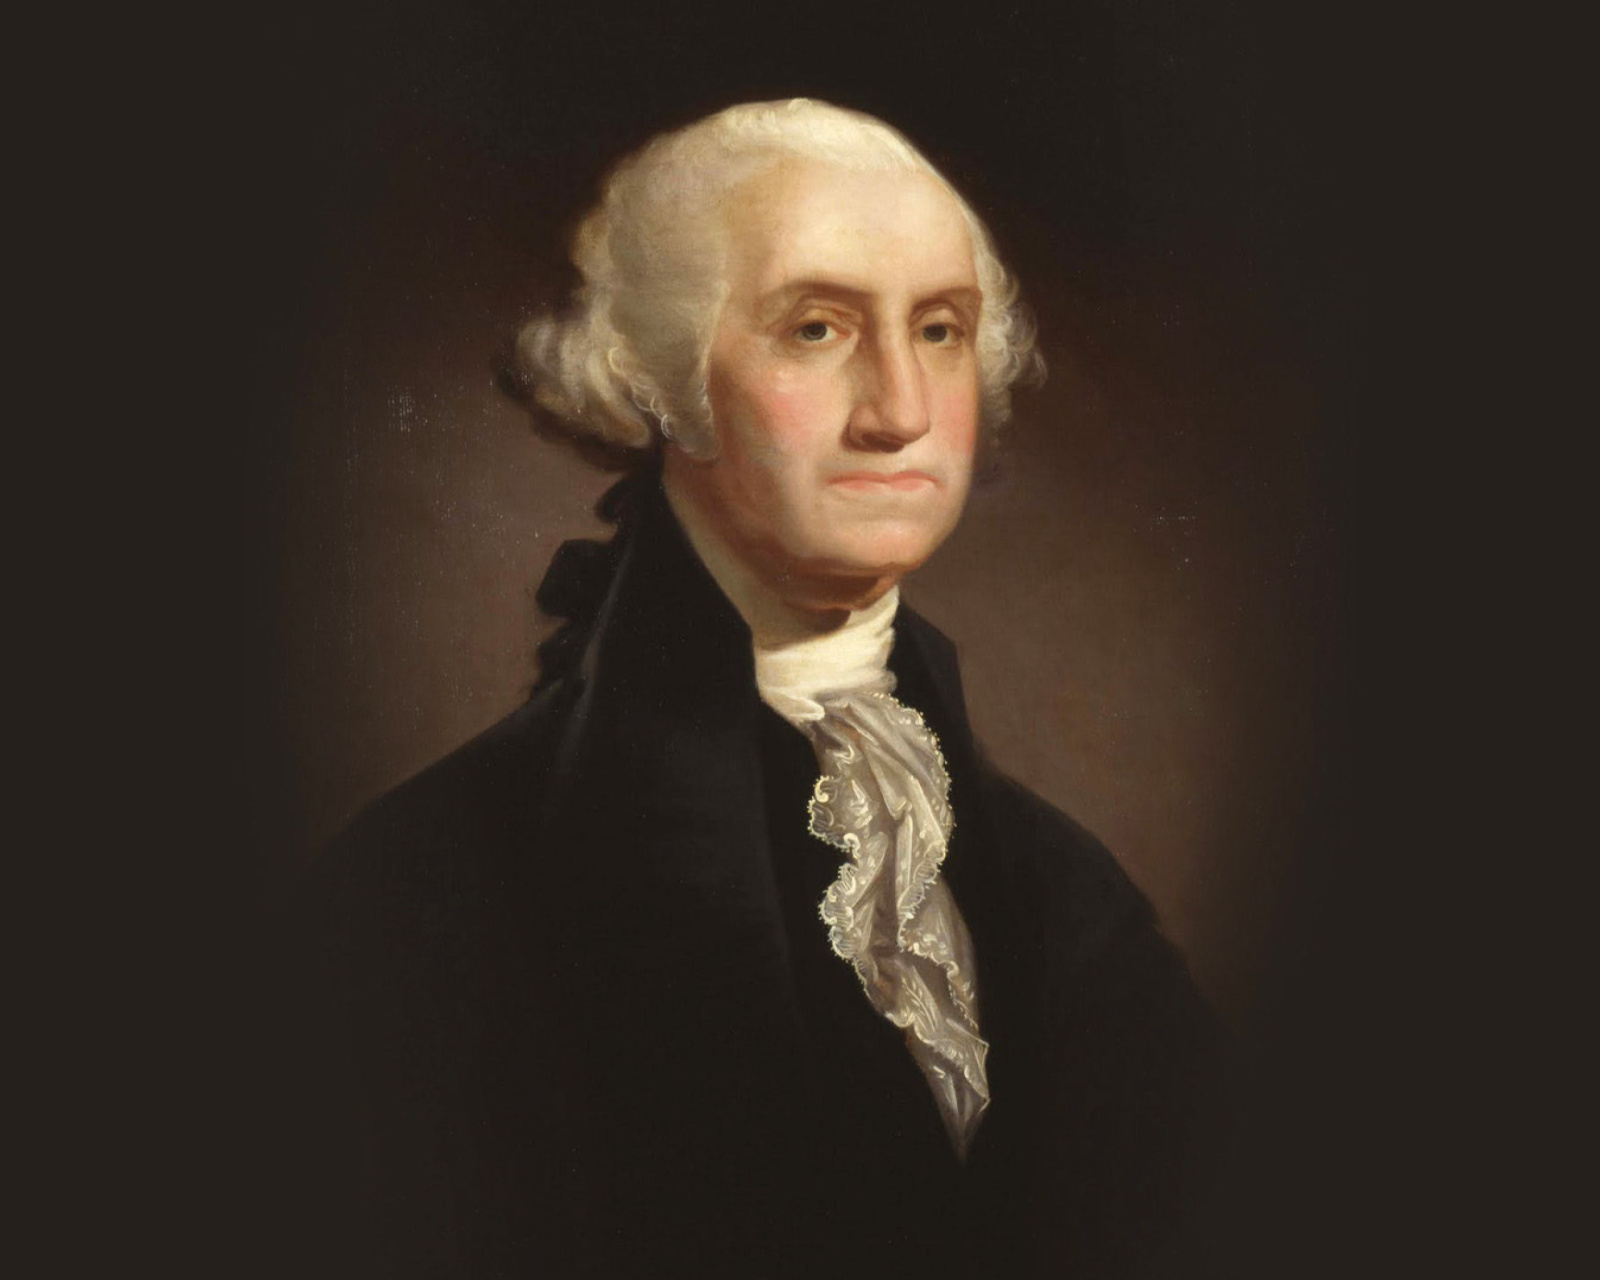 the life of george washington as a military leader in the united states List qualities they believe made george washington an effective military leader list some practical lessons washington may have learned from his early military experiences discuss some difficulties washington faced as commander-in-chief.